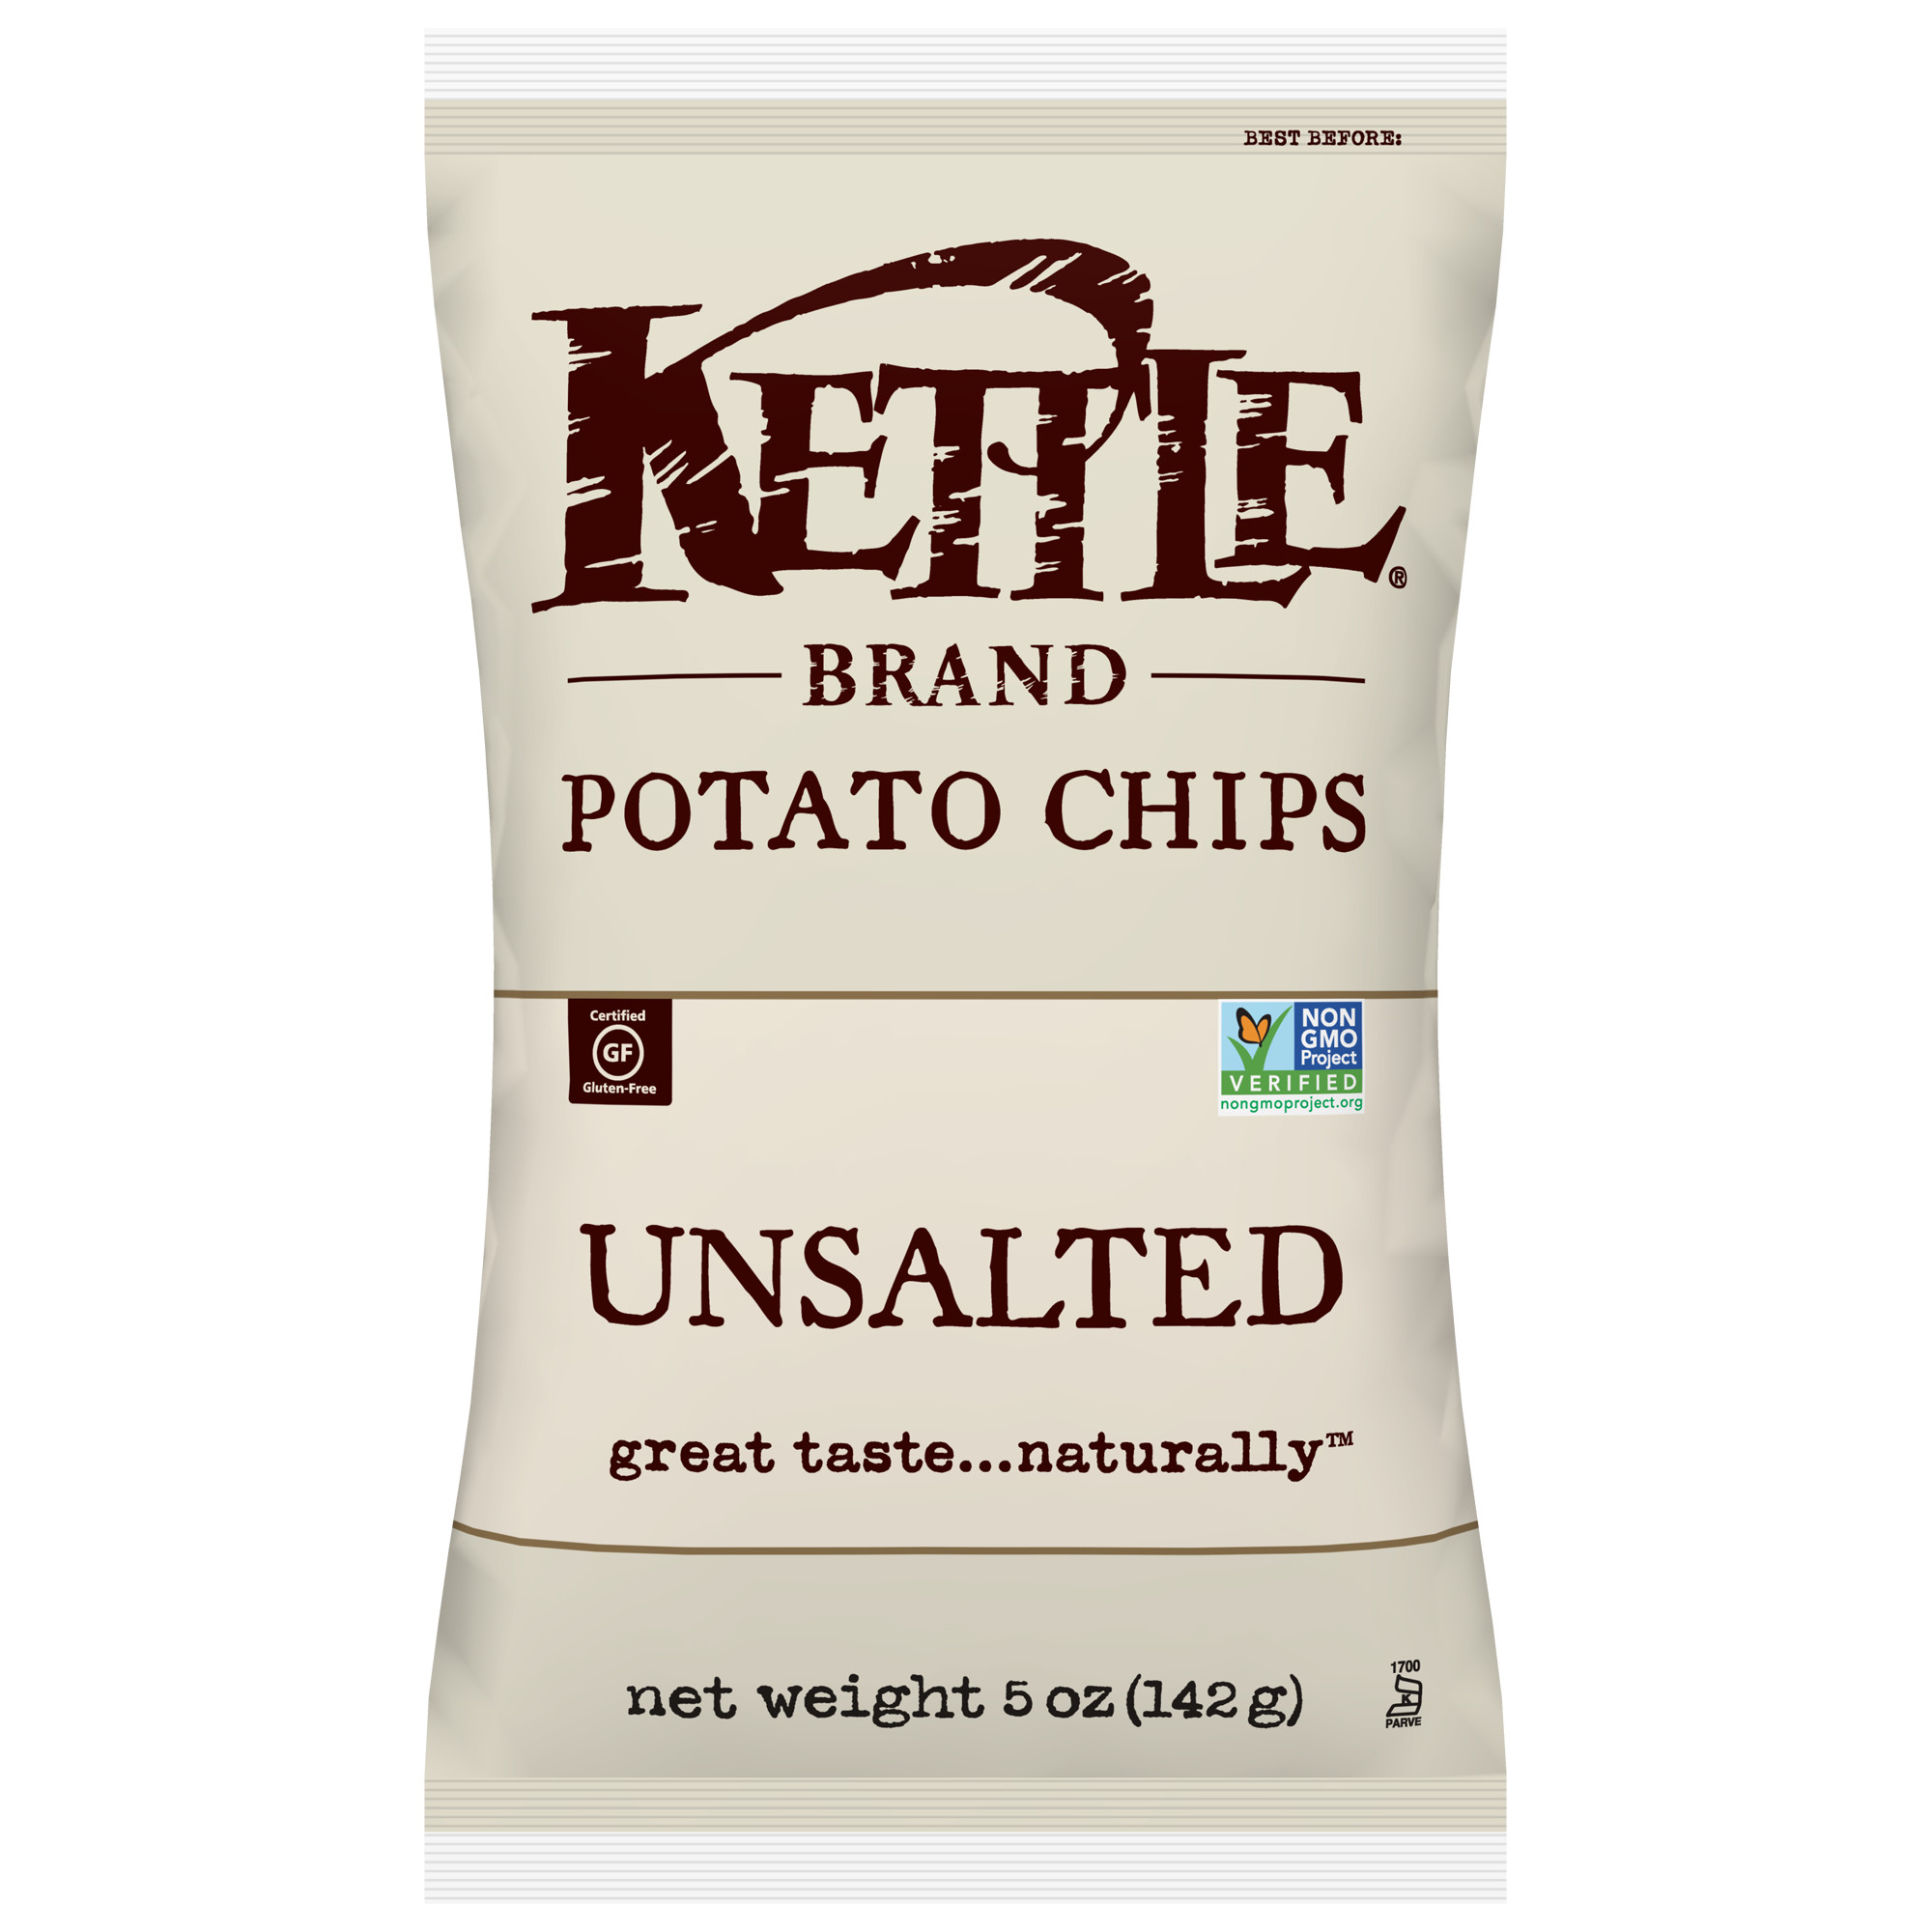 Kettle Brand Potato Chips, Unsalted, 5 Oz